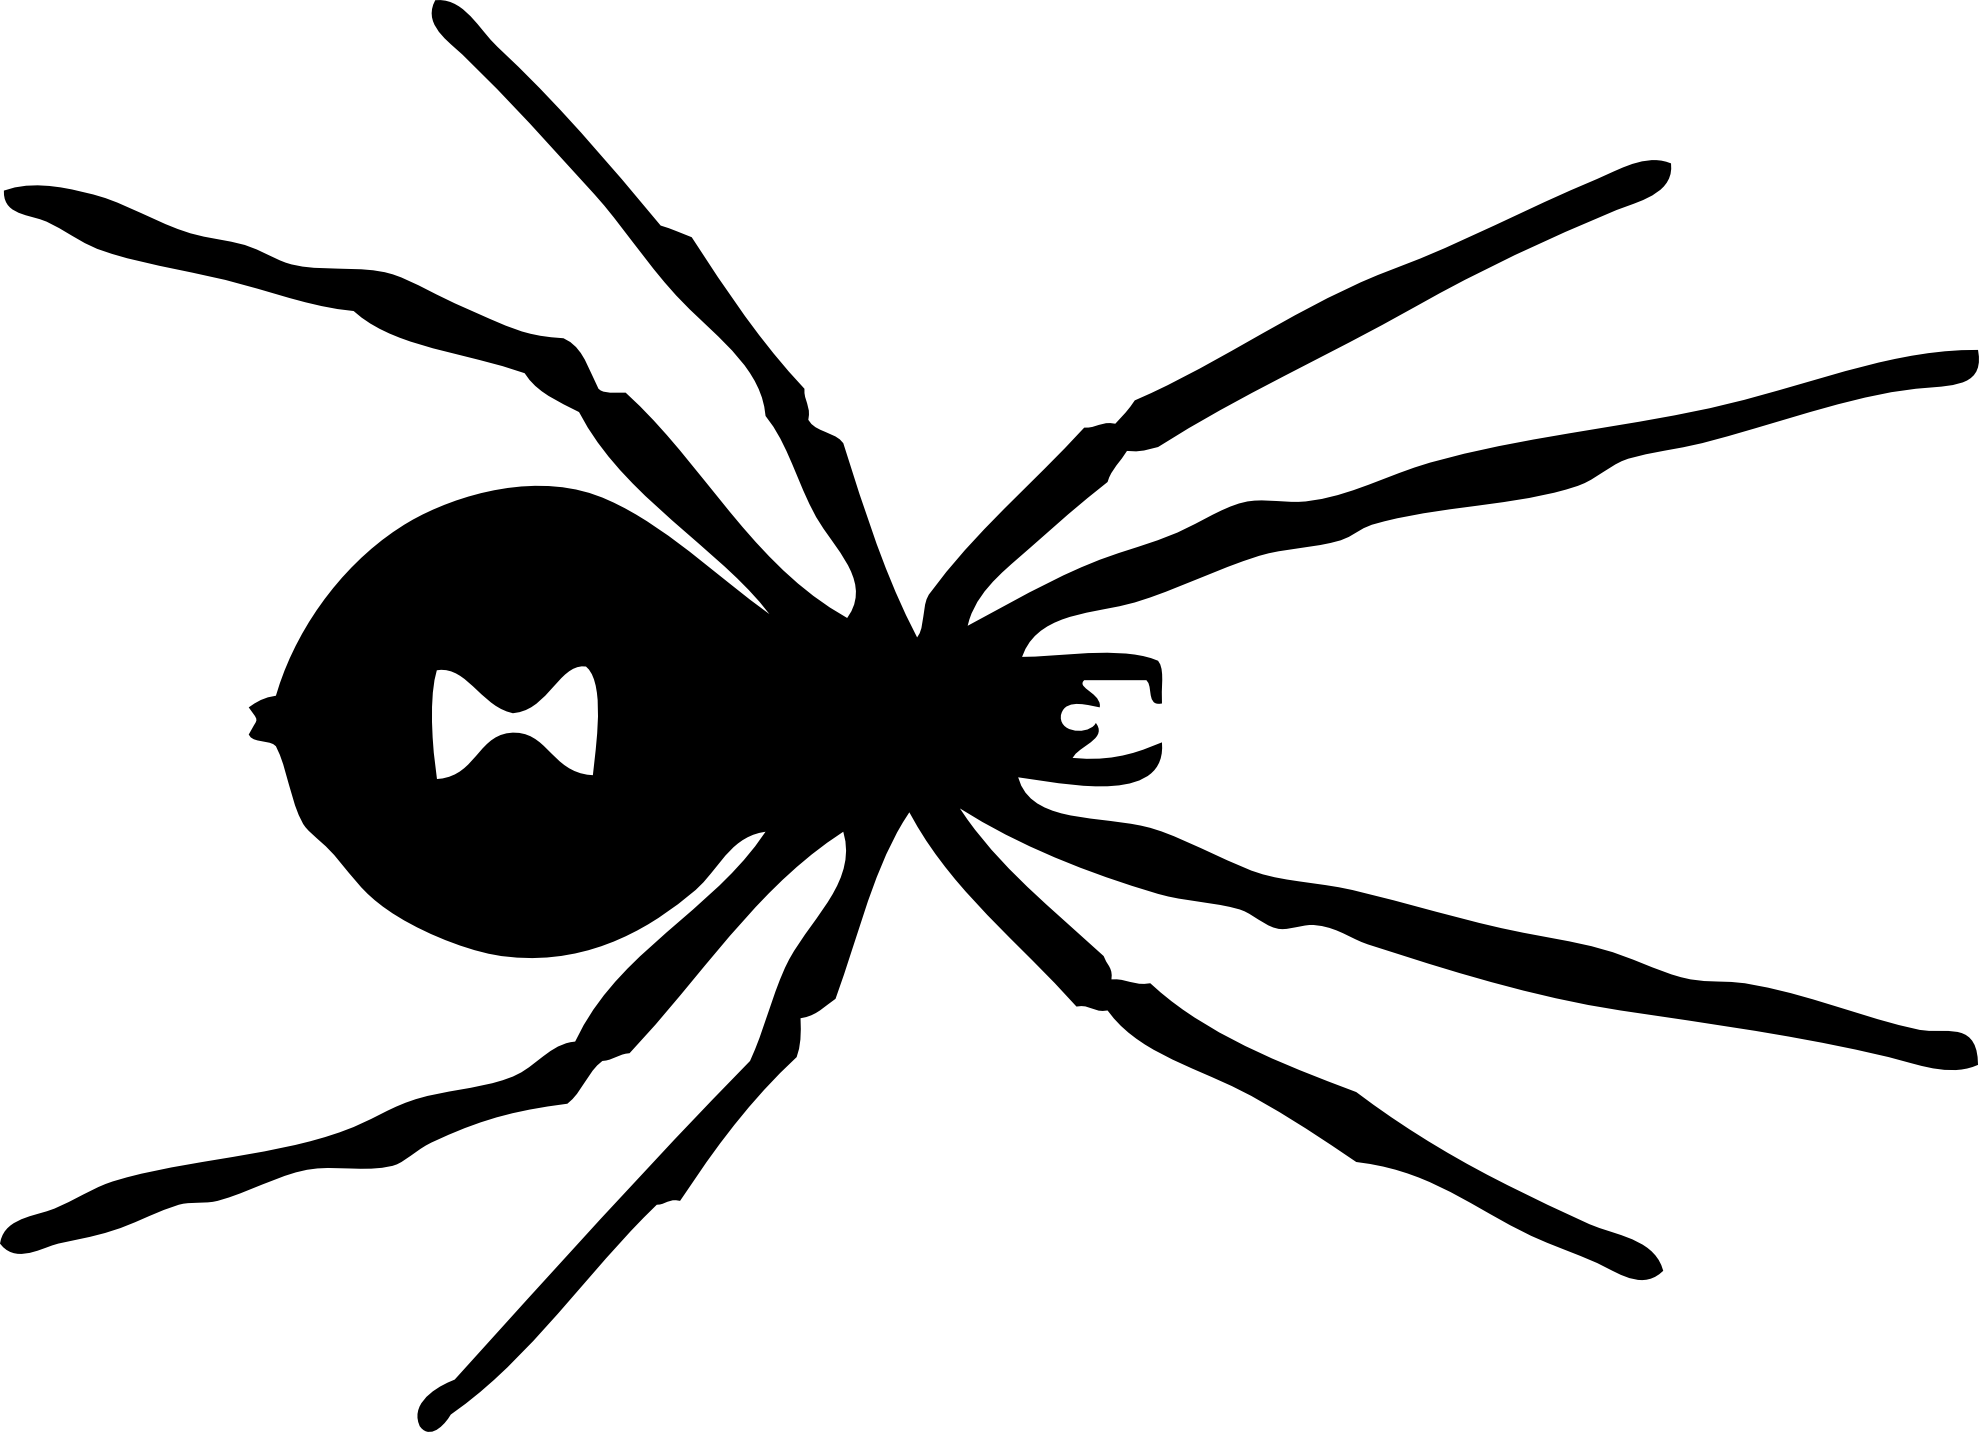 Spider Clipart Black And White | Wallpapers Gallery